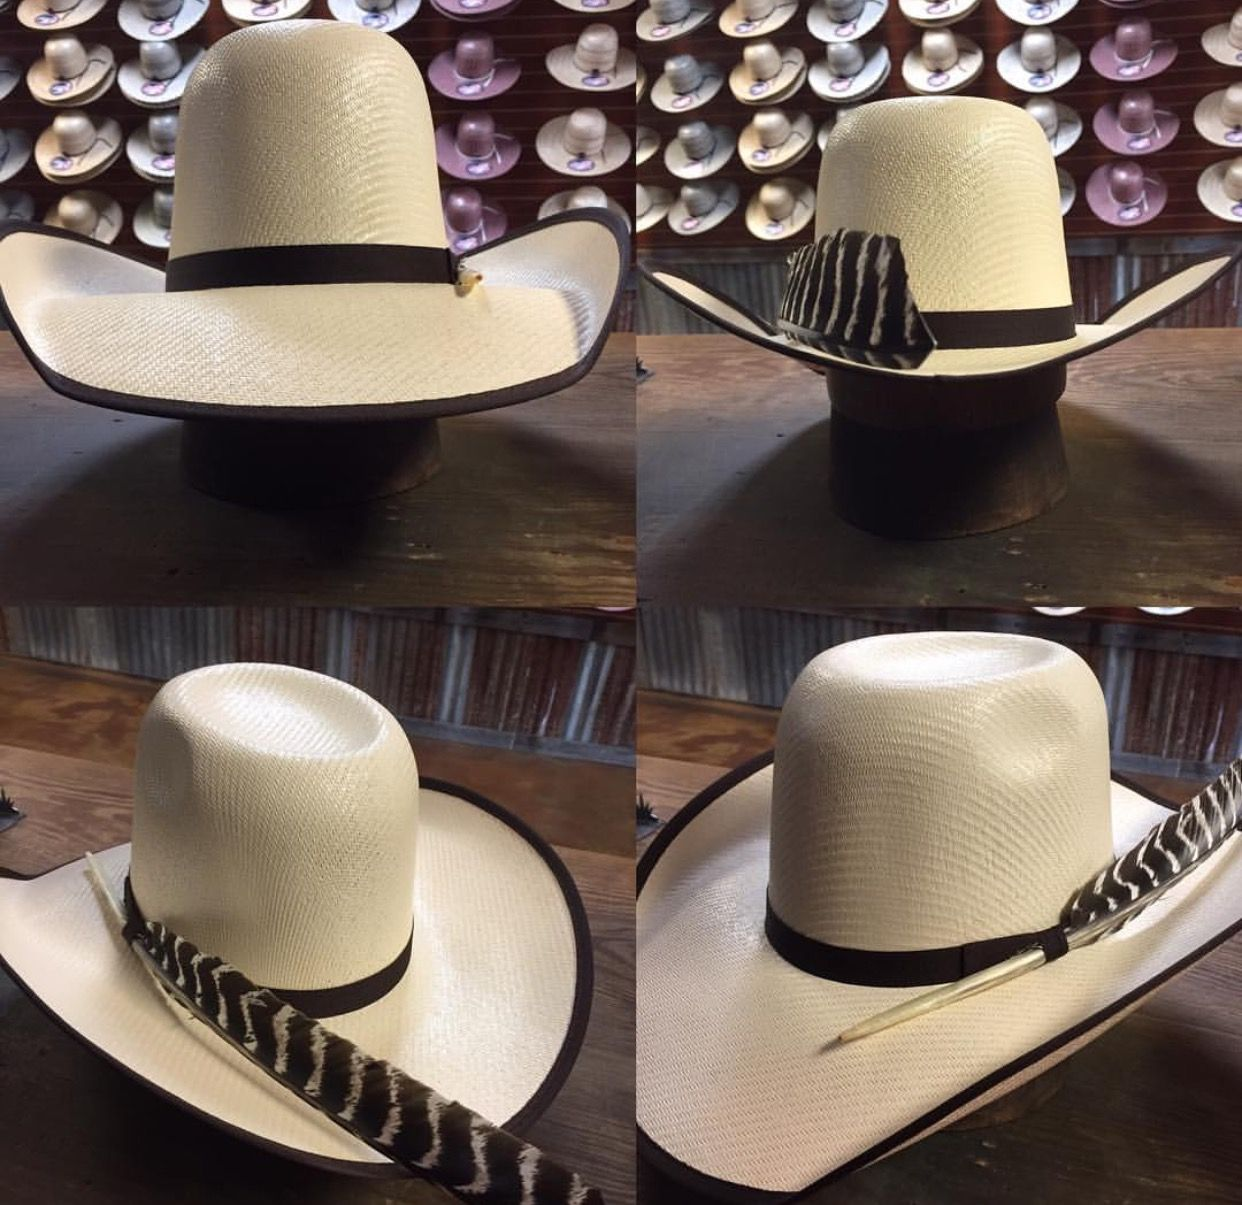 Pin by Tanner Eastlund on Hats in 2019  8c2e5a83198